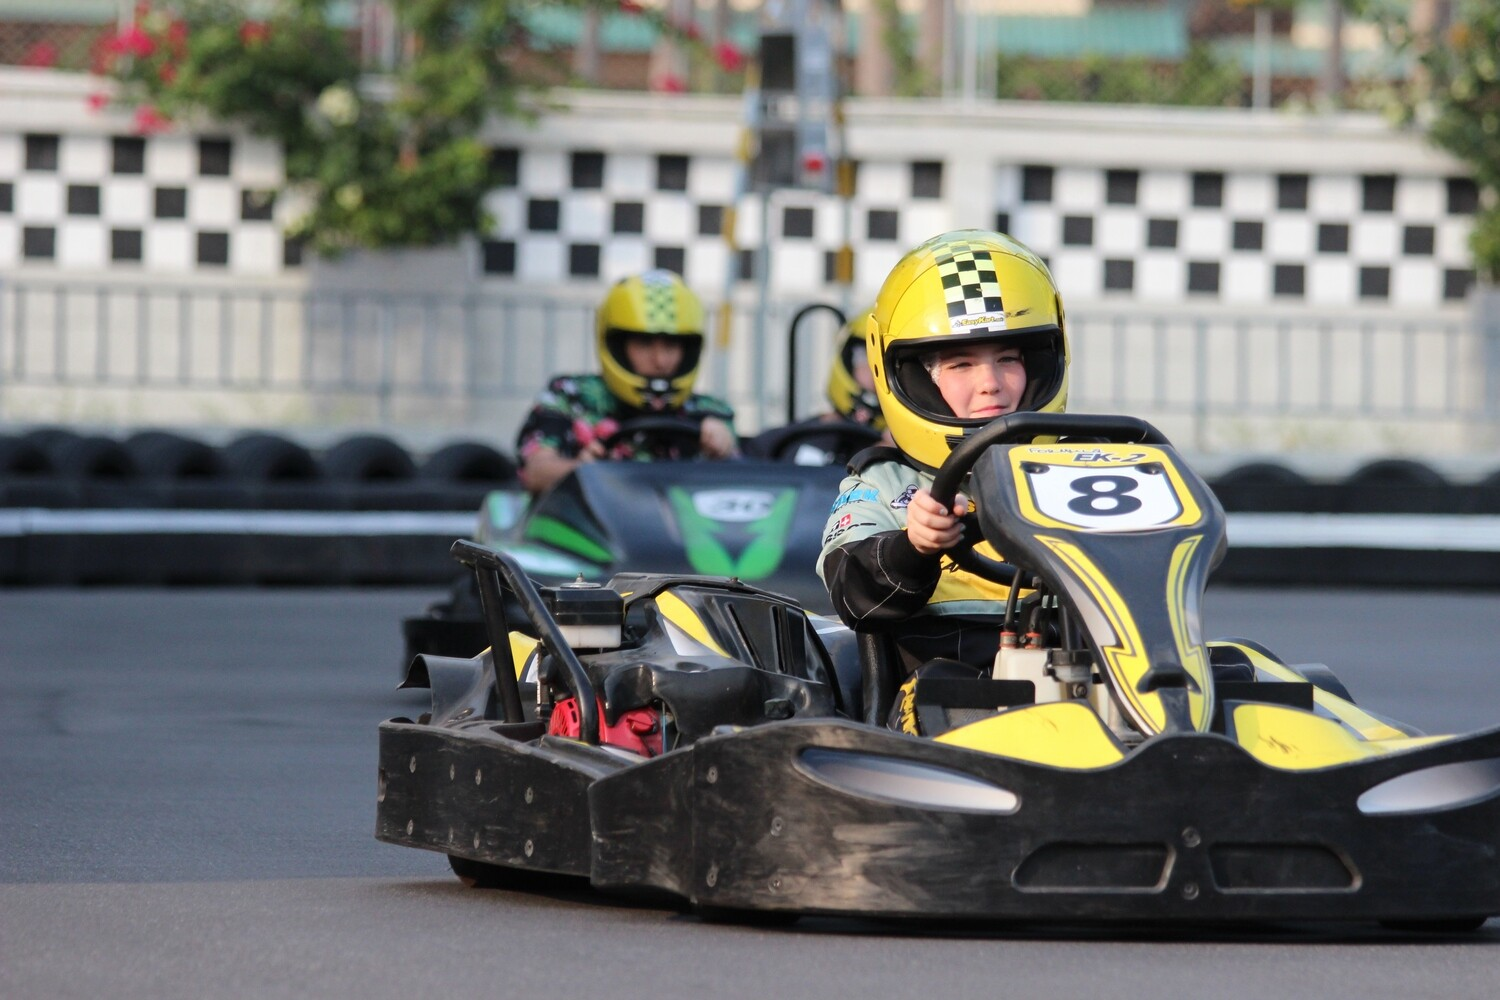 Pattaya 常规卡丁车 (1次) - Regular kart (1 race)